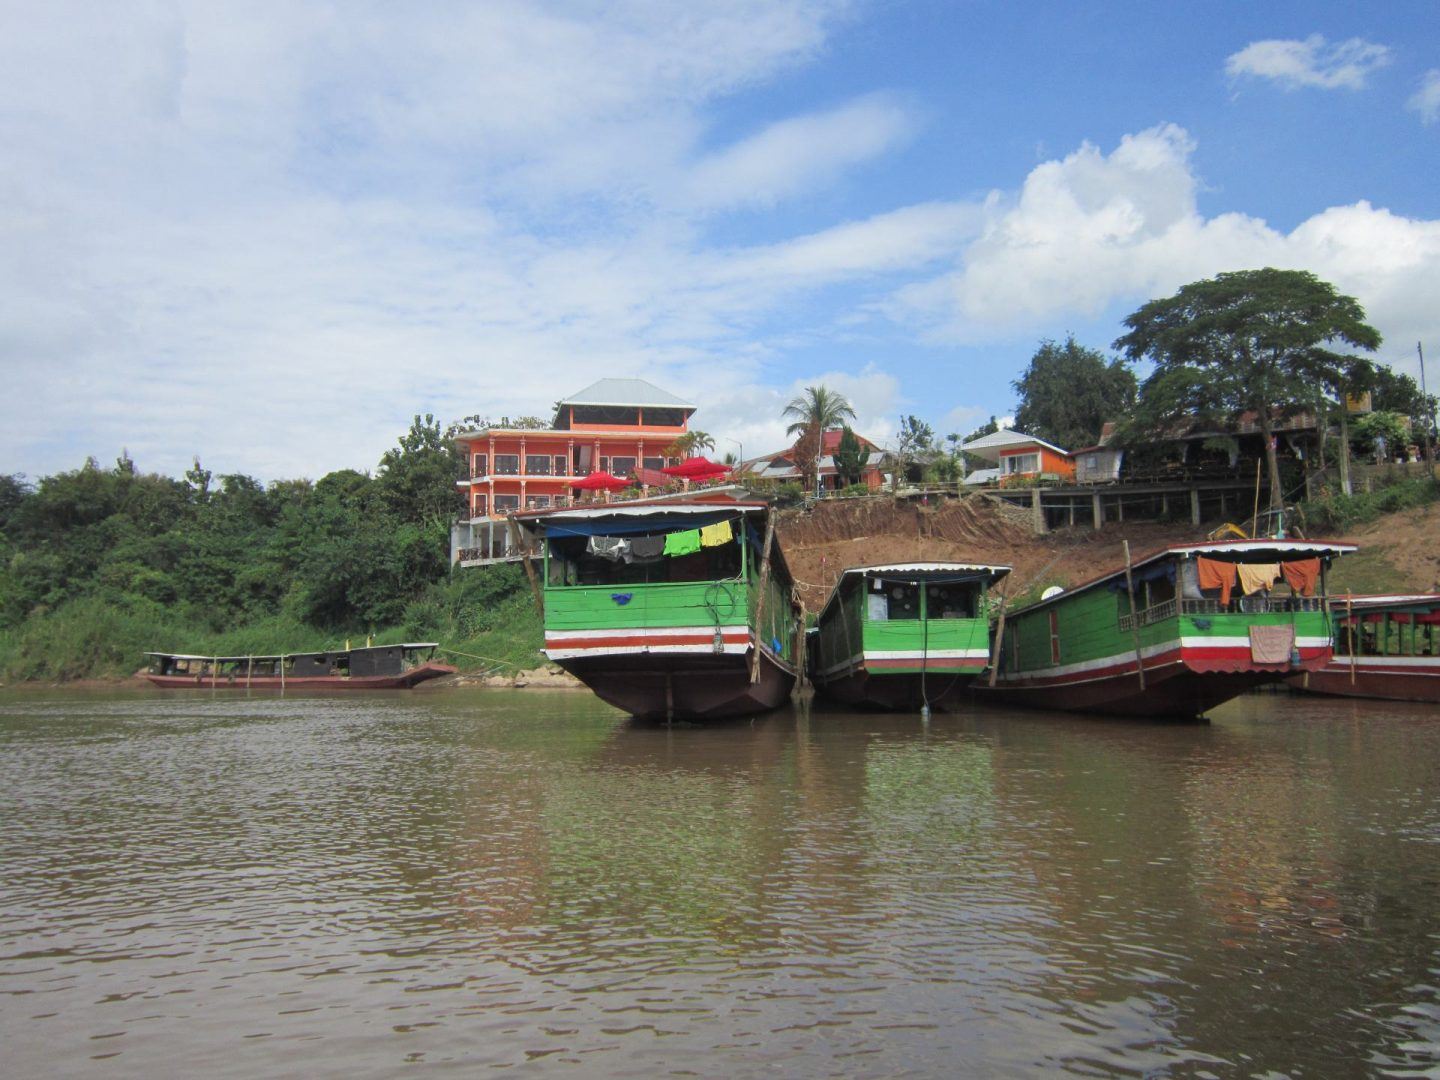 A views of slow boats docked in Huay Xai, taken looking back at shore